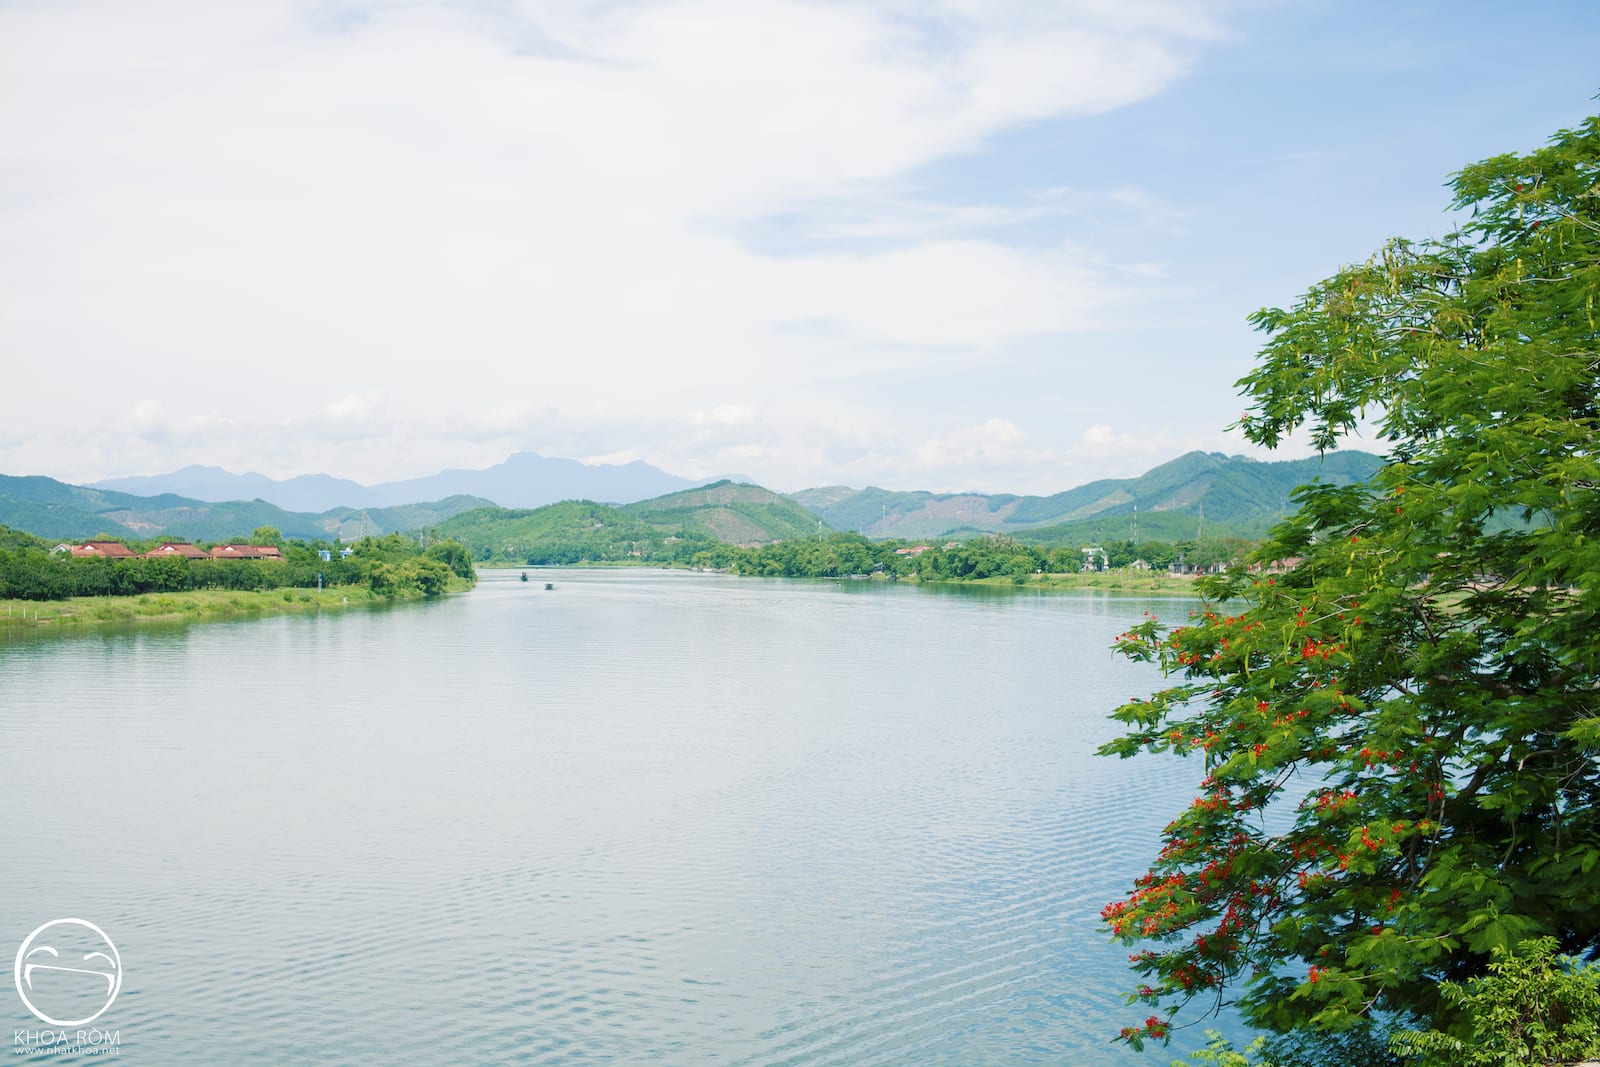 Image of the Perfume River in Vietnam